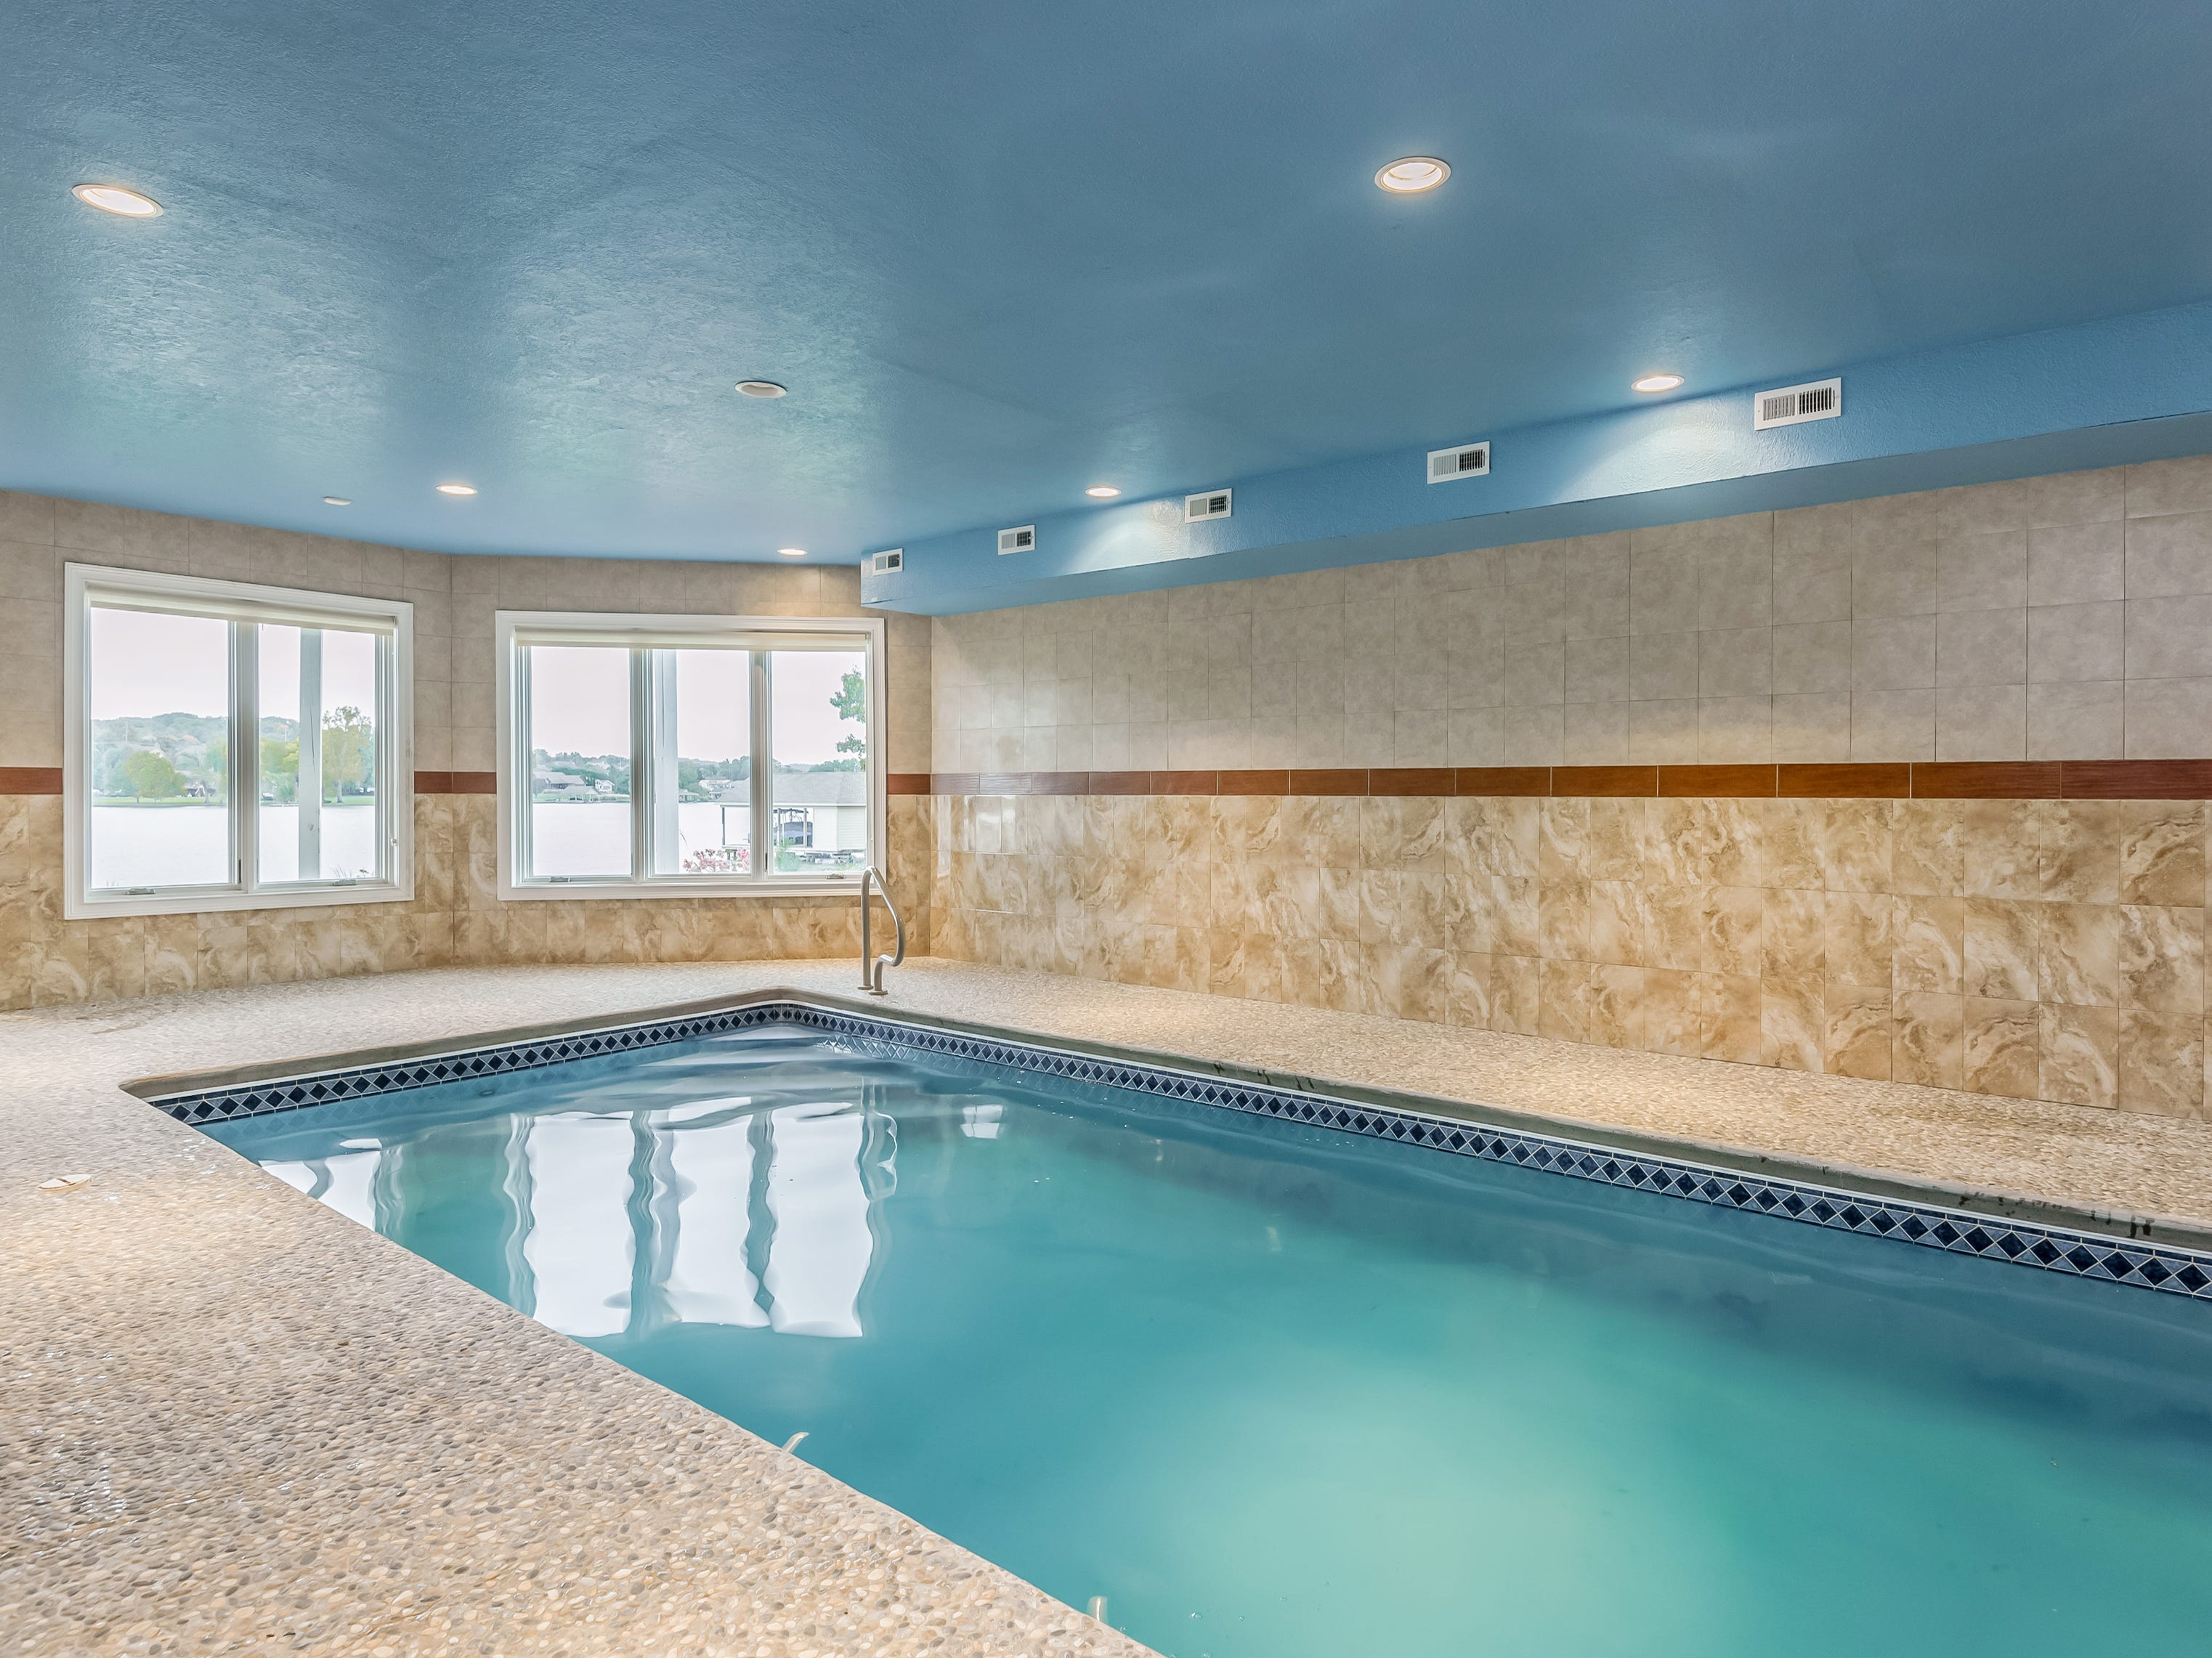 The mansion includes a heated indoor pool. 1439 Charlottesville Blvd in Farragut is listed for $1,995,000.